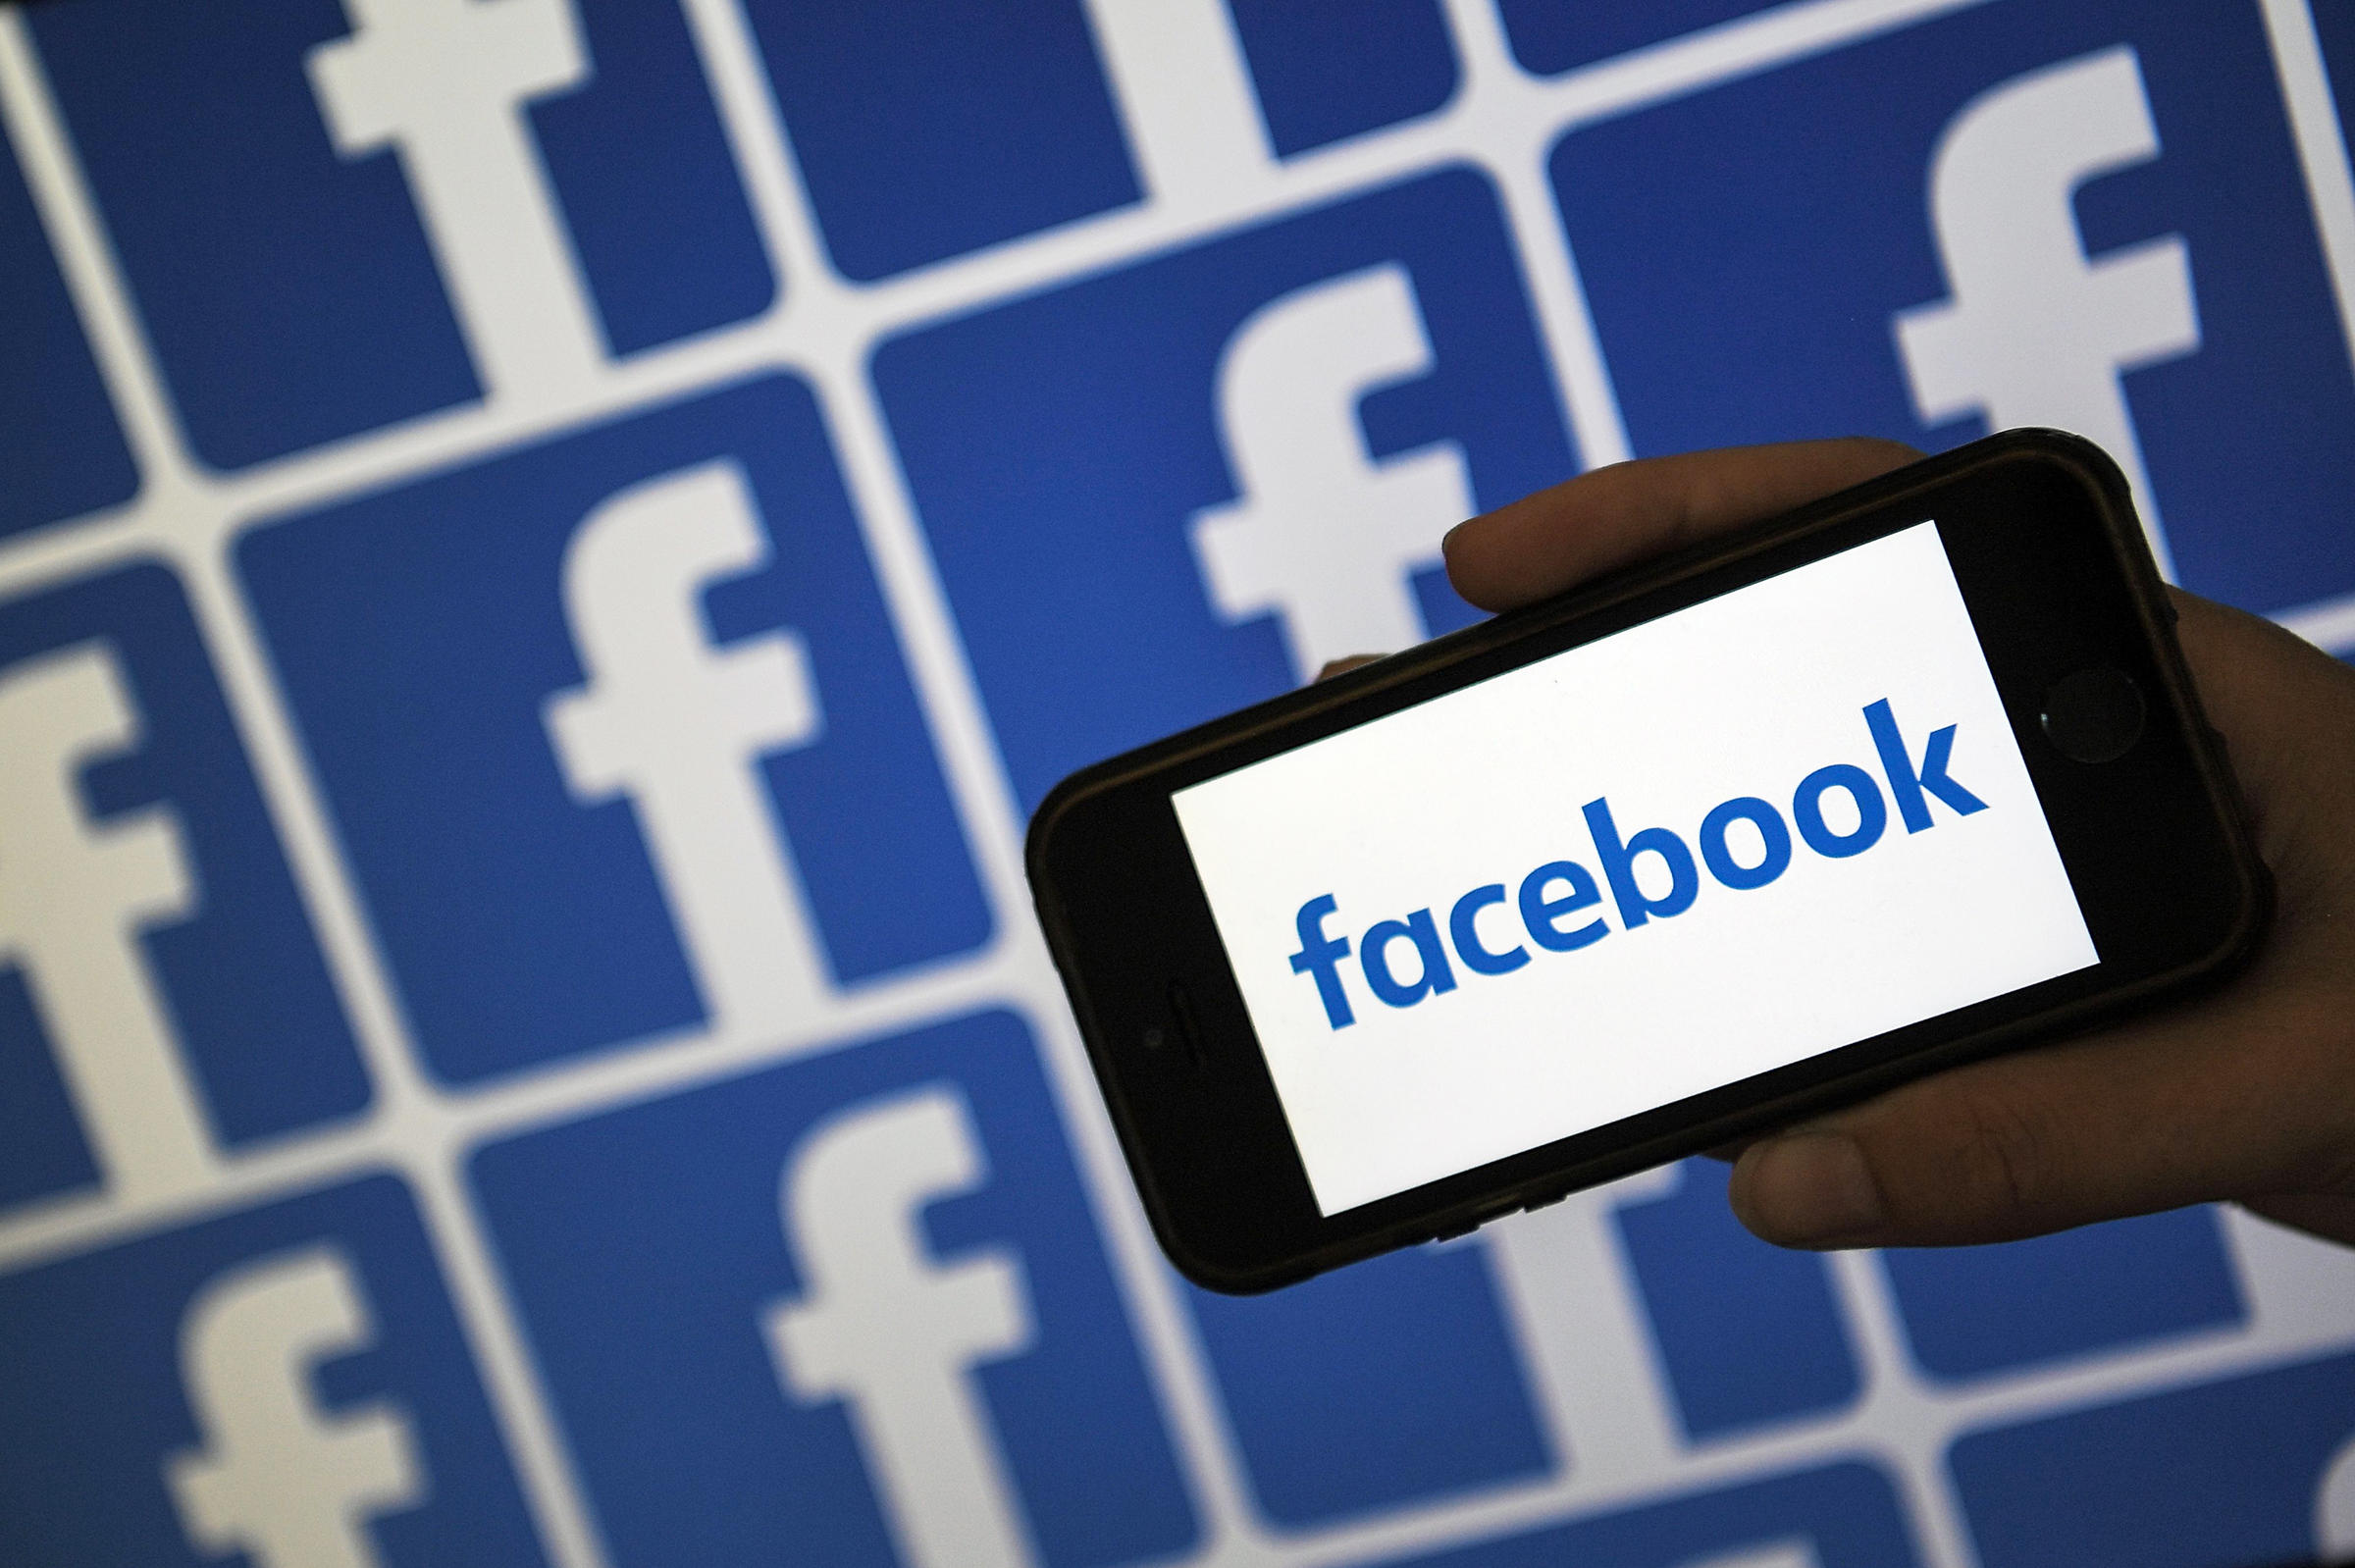 Facebook invests 100 mln United States dollars in journalism amid COVID-19 crisis